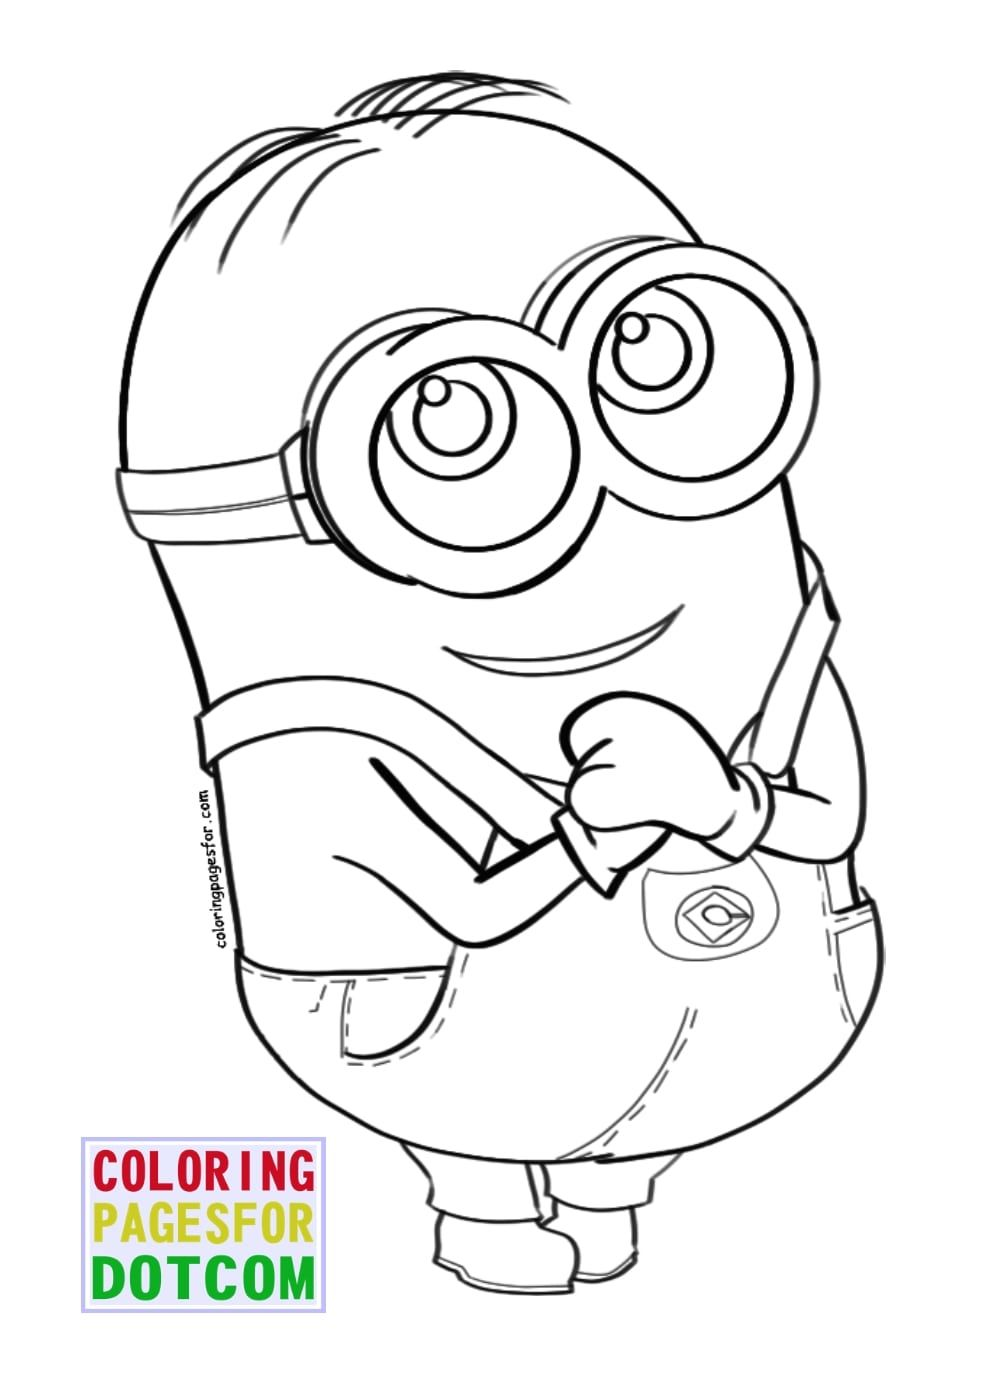 Minion Printable Coloring Pages Minion Coloring Pages Minions Coloring Pages Coloring Pages To Print